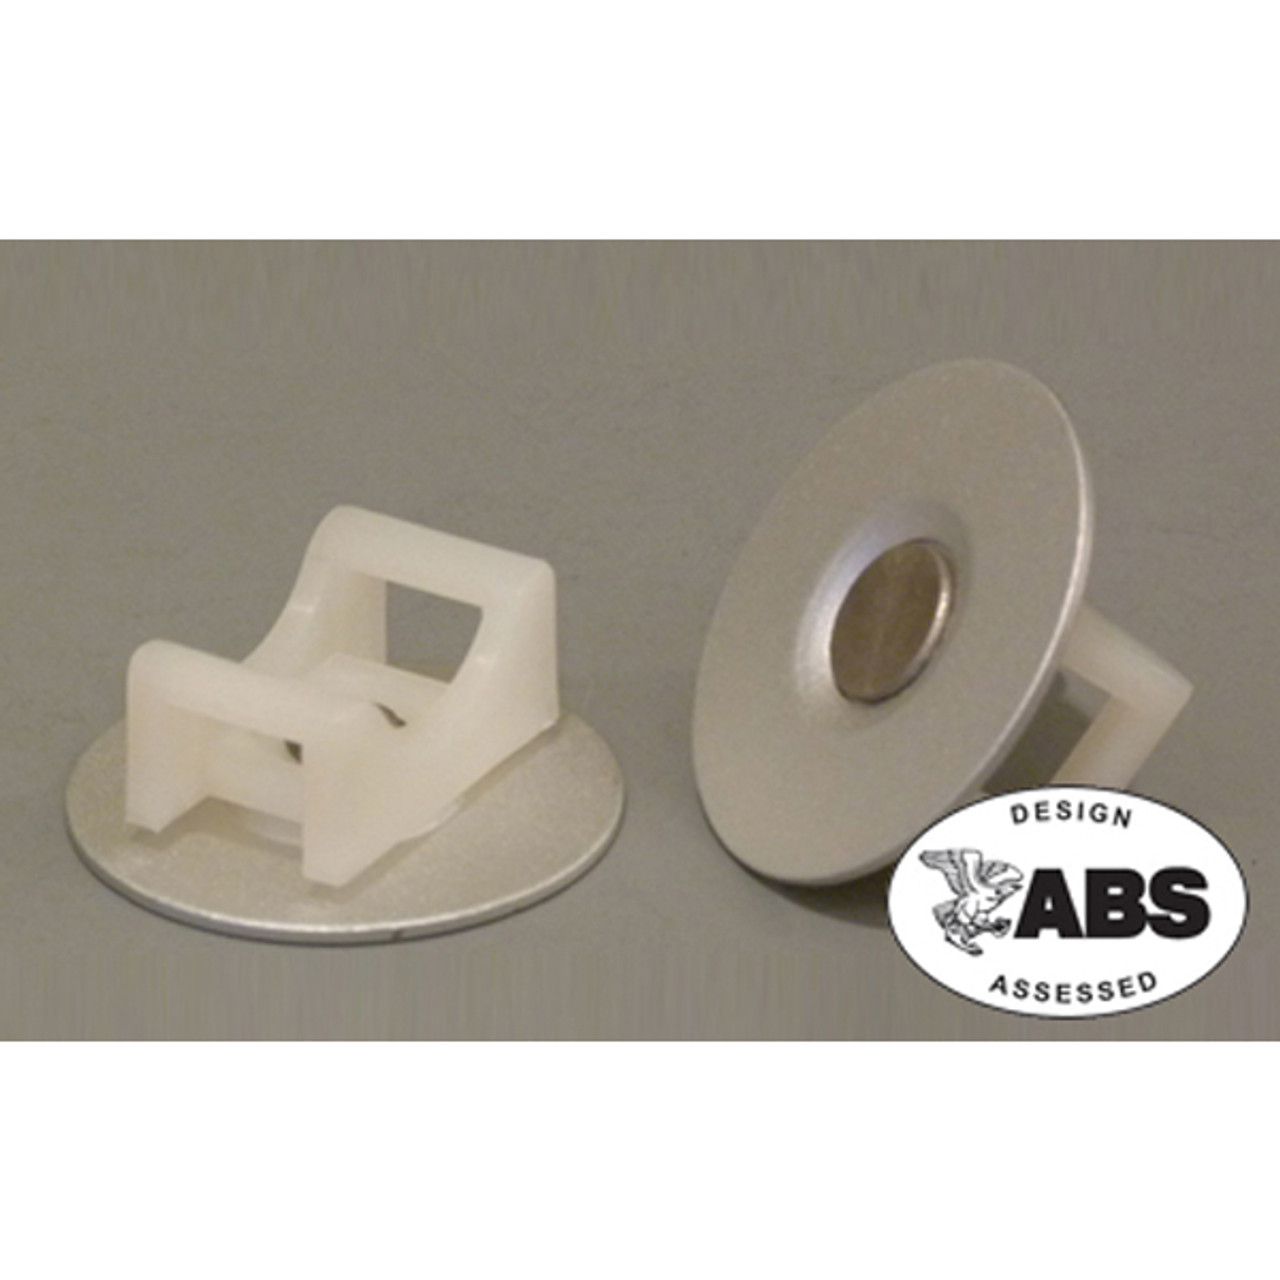 (807050) Swivel Tie Mount - pack of 10